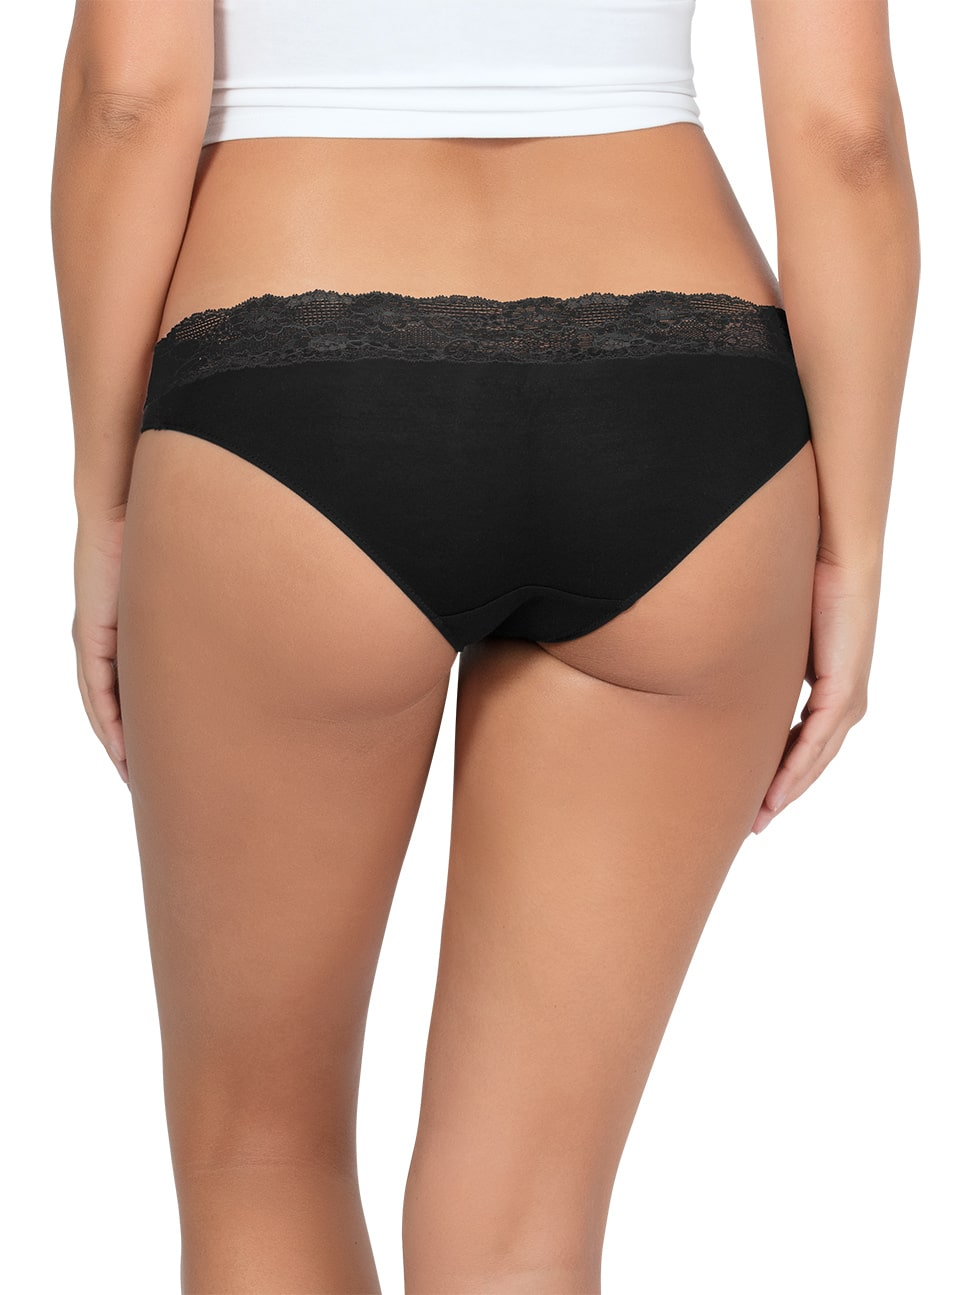 PARFAIT ParfaitPanty SoEssential BikiniPP303 Black Back close - Panty So Essential Bikini- Black - PP303